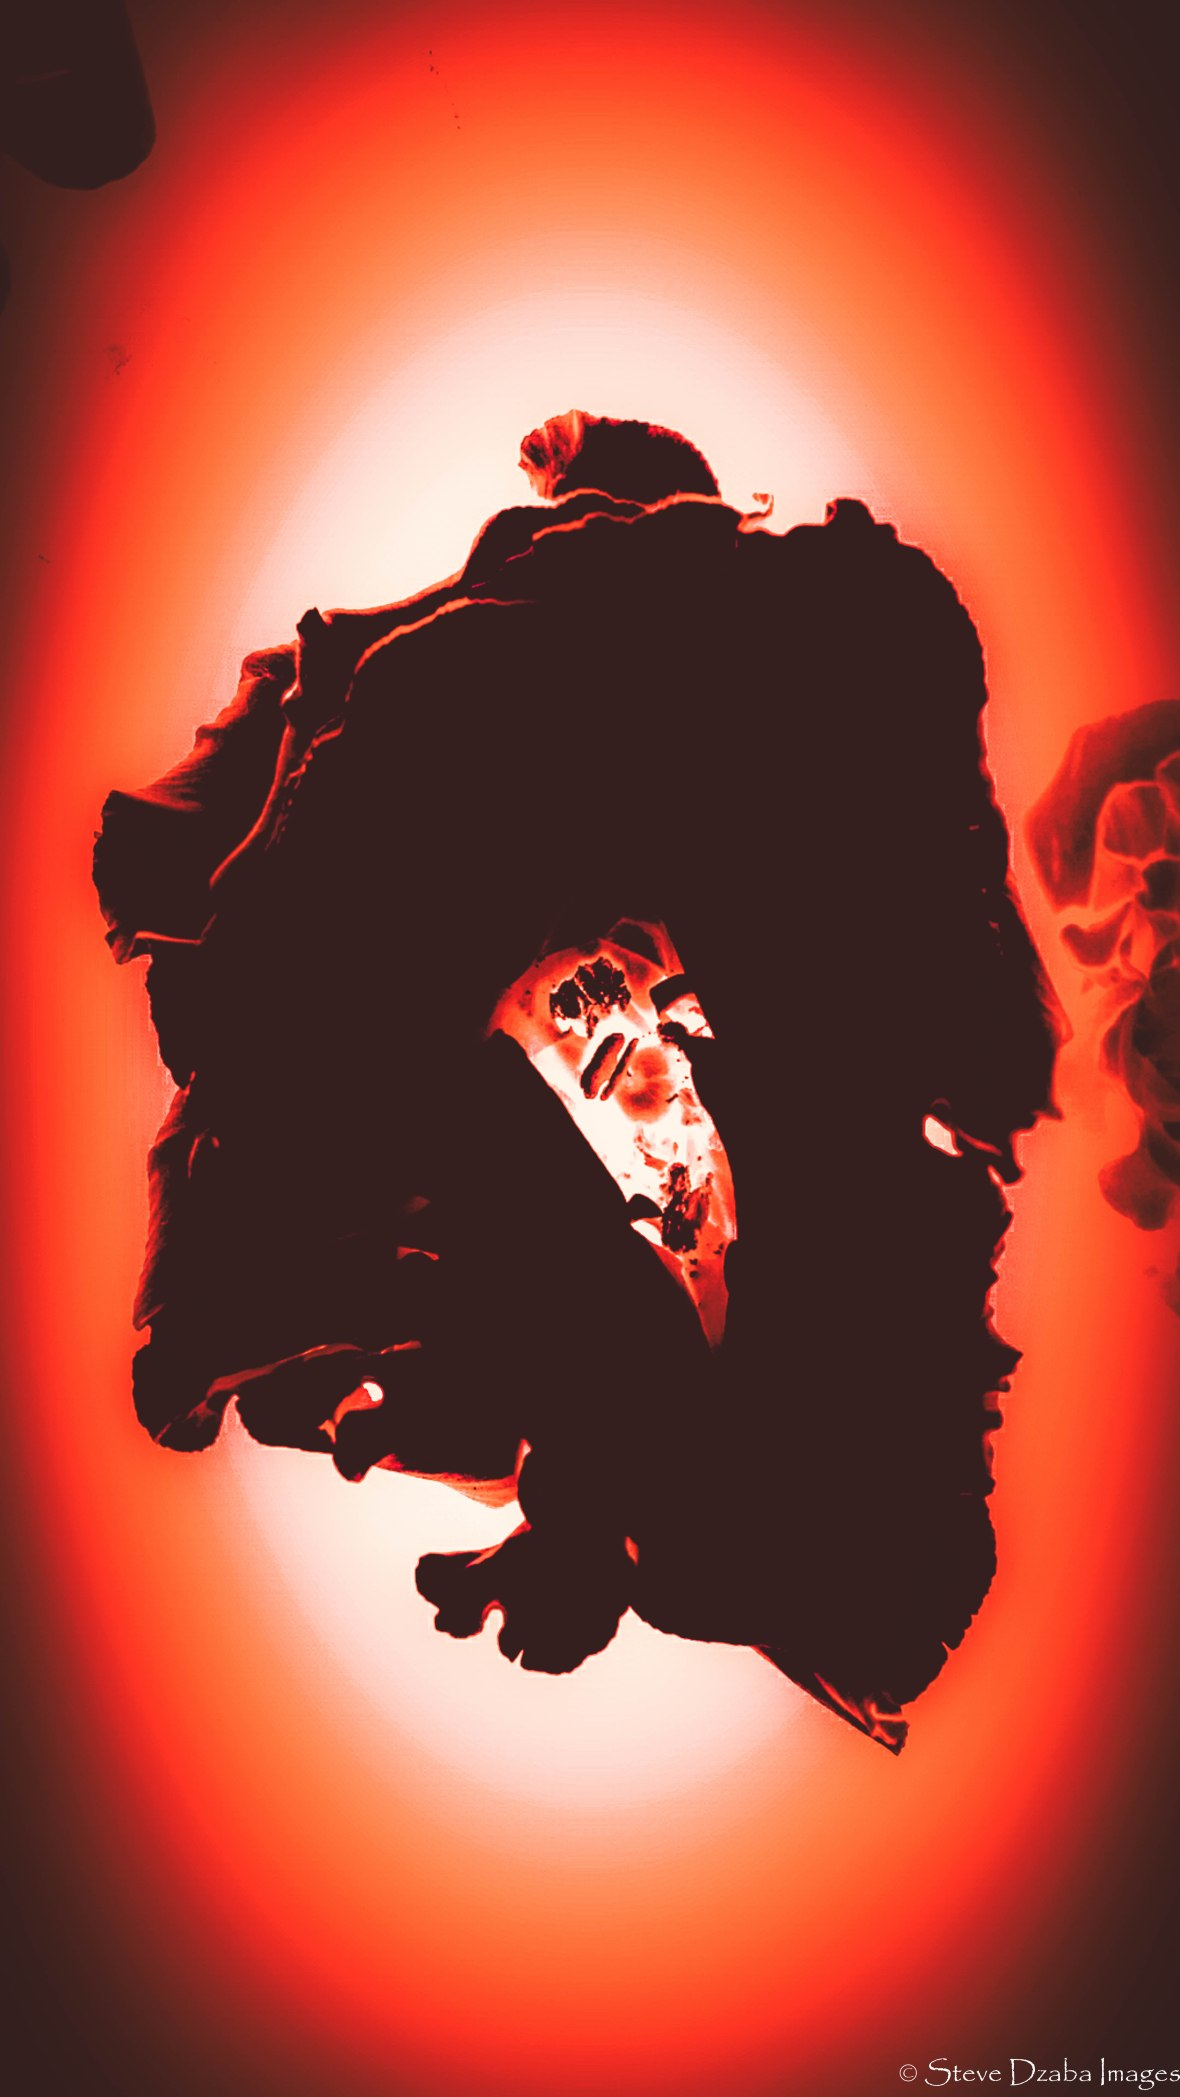 Abstract Portrait Series: Unbreakable Blood Orange Flame Vignette Limited Edition